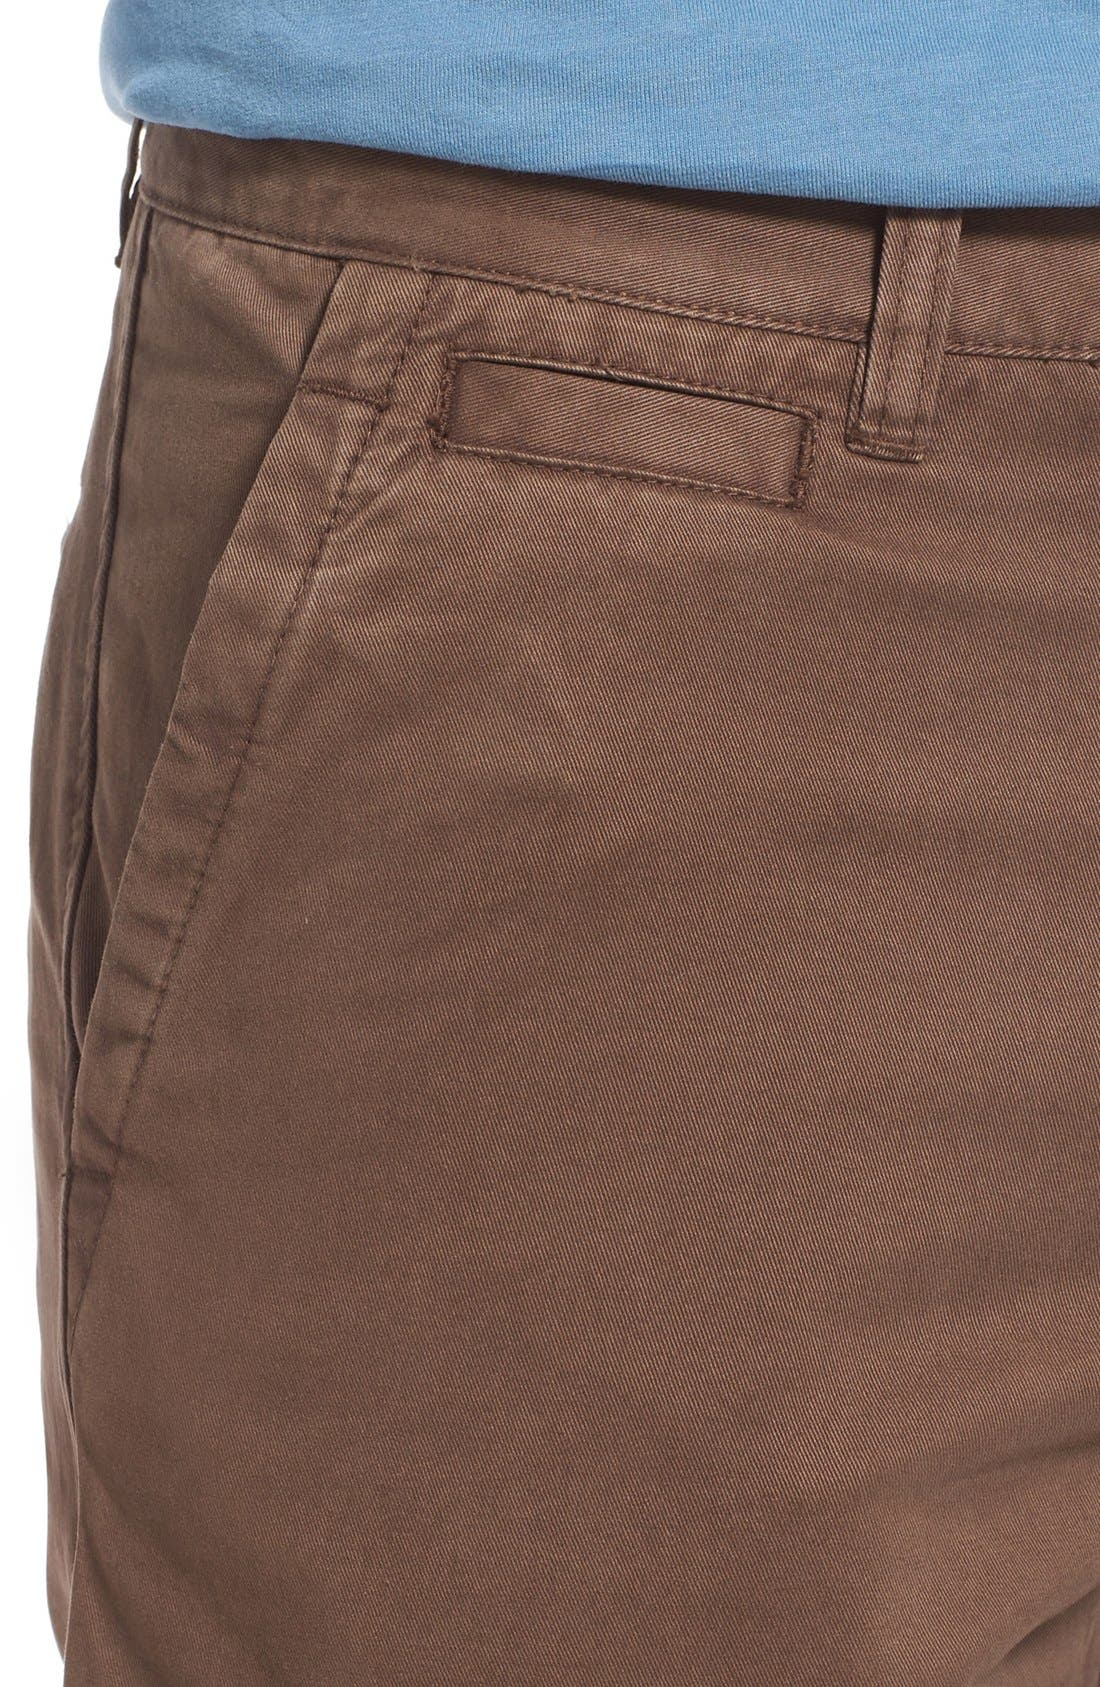 'Sahara' Trim Fit Vintage Washed Twill Chinos,                             Alternate thumbnail 29, color,